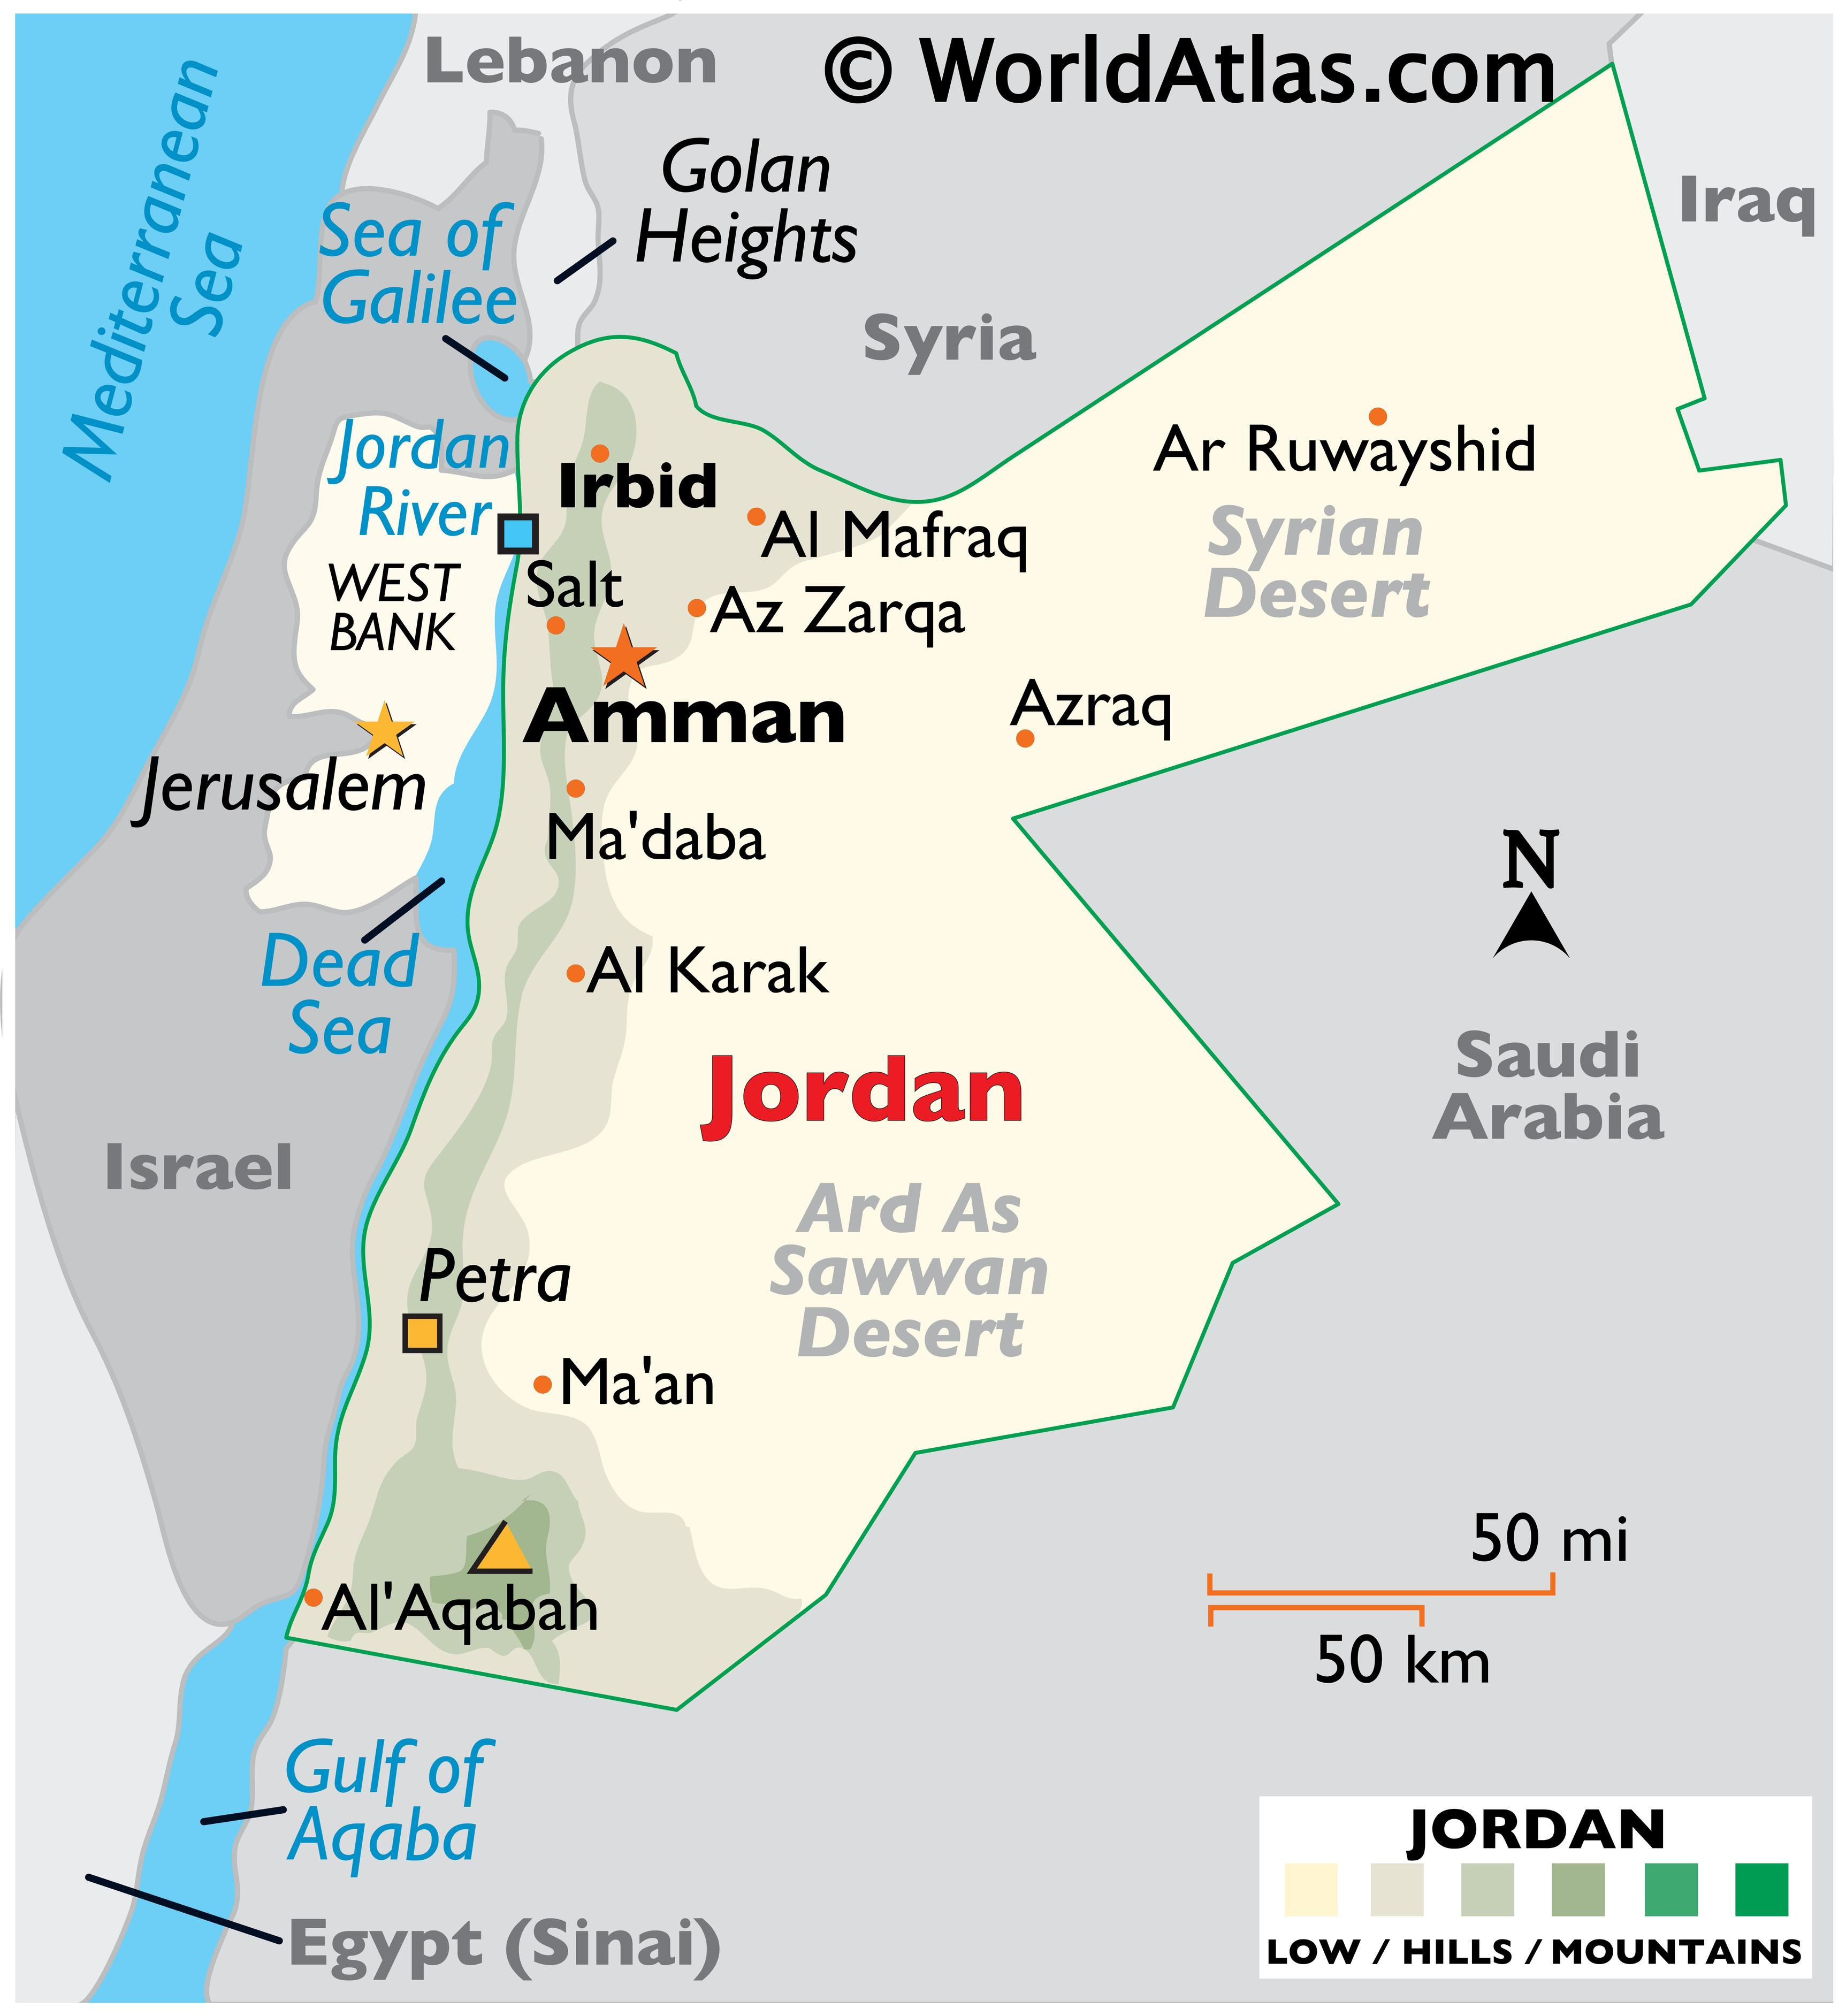 Physical Map of Jordan showing relief, highest point, Jordan River, Dead Sea, Syria Desert, and Ard As Sawwan Desert.